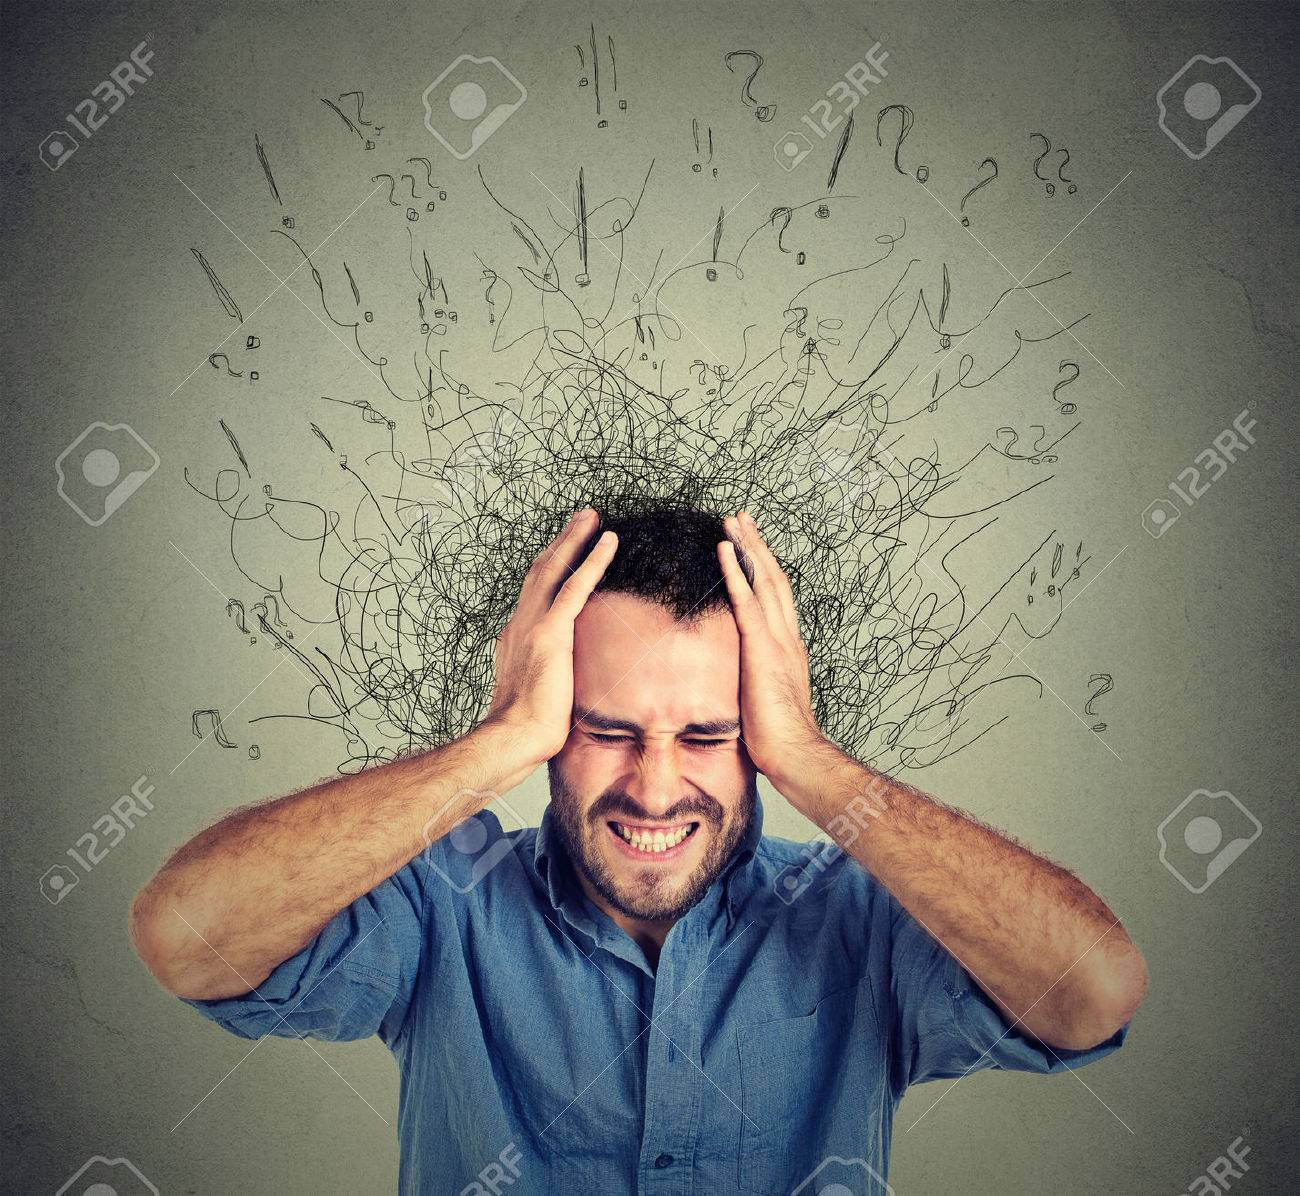 Stressed man upset frustrated has too many thoughts with brain melting into lines question marks. Obsessive compulsive, adhd, anxiety disorder. Negative human emotions face expression feelings - 51742552